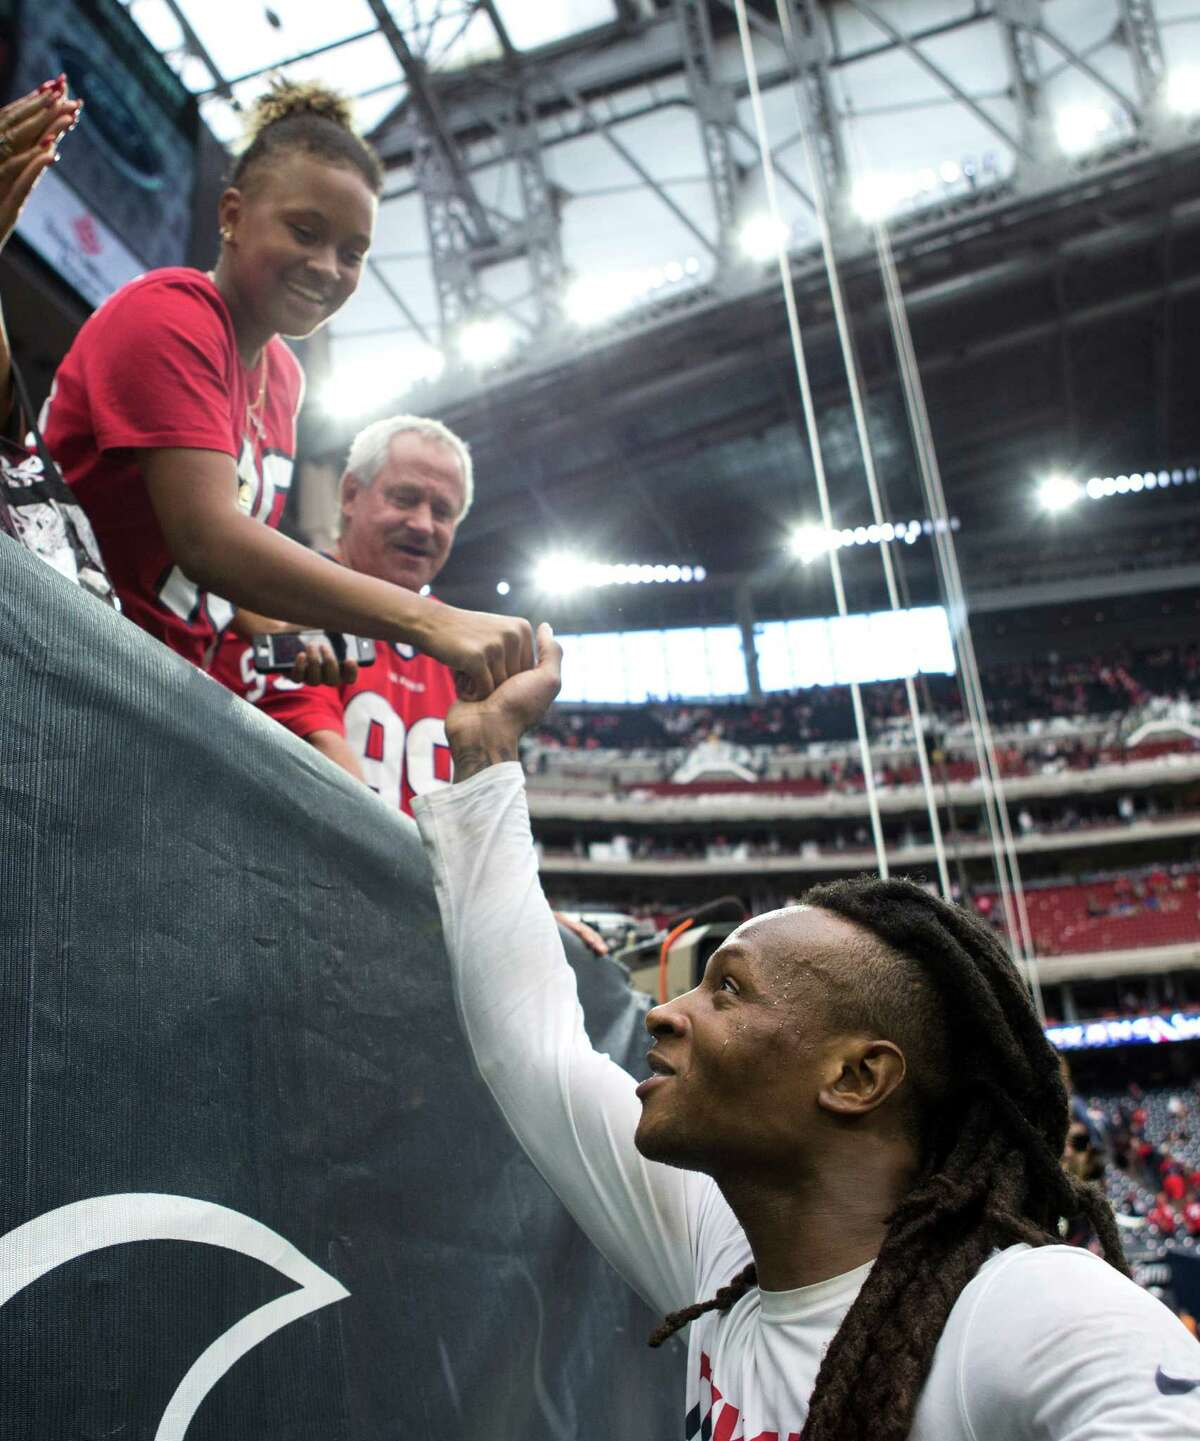 Houston Texans wide receiver DeAndre Hopkins reaches up to a fan after the Texans beat the Kansas City Chiefs 19-12 in an NFL football game at NRG Stadium on Sunday, Sept. 18, 2016, in Houston.